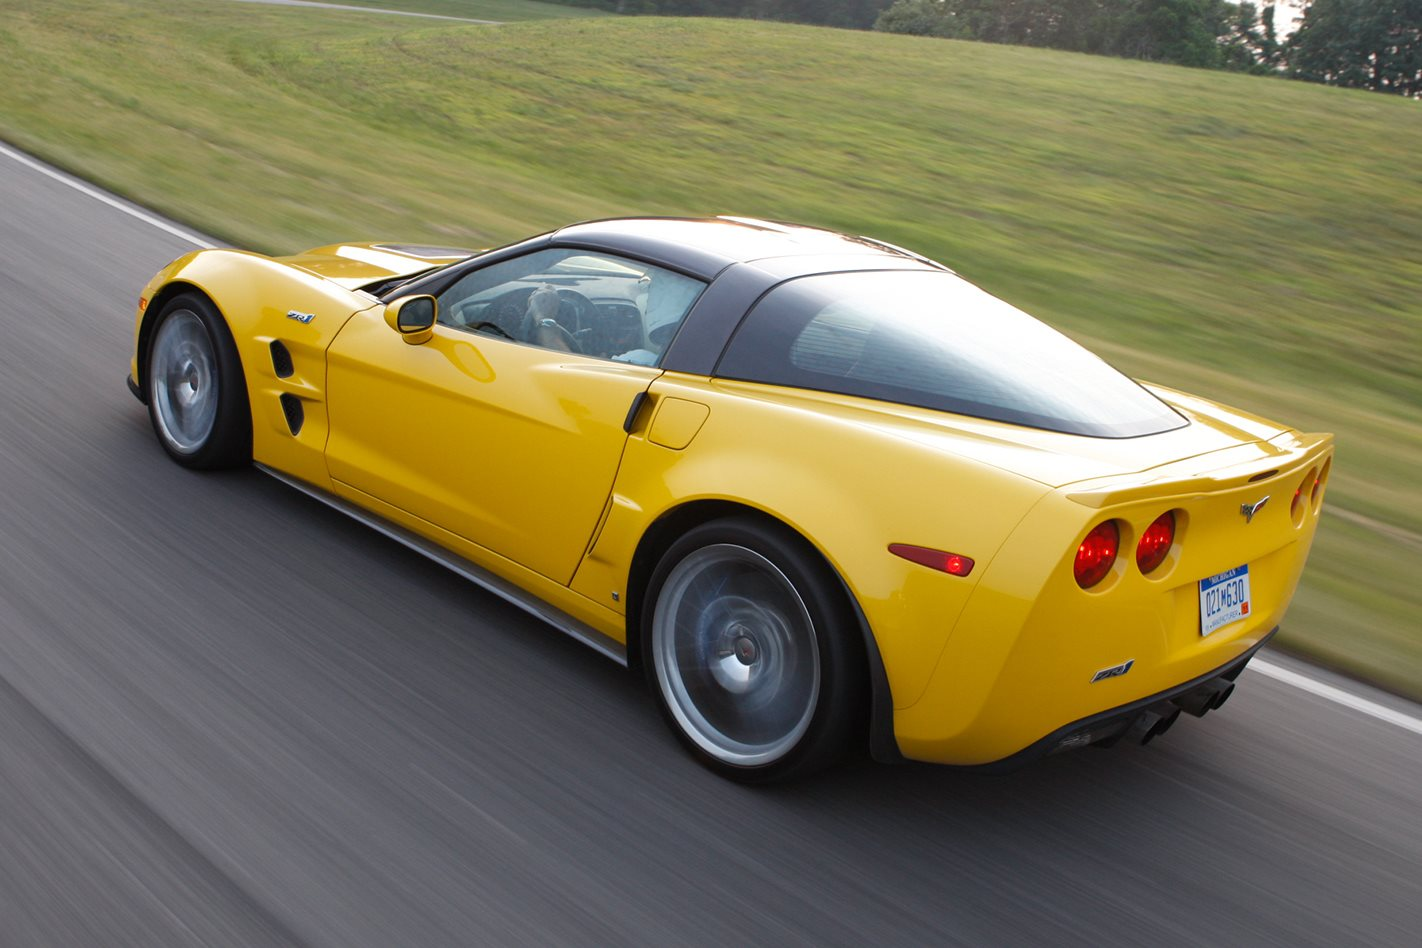 2009-Chevrolet-Corvette-ZR1-rear.jpg